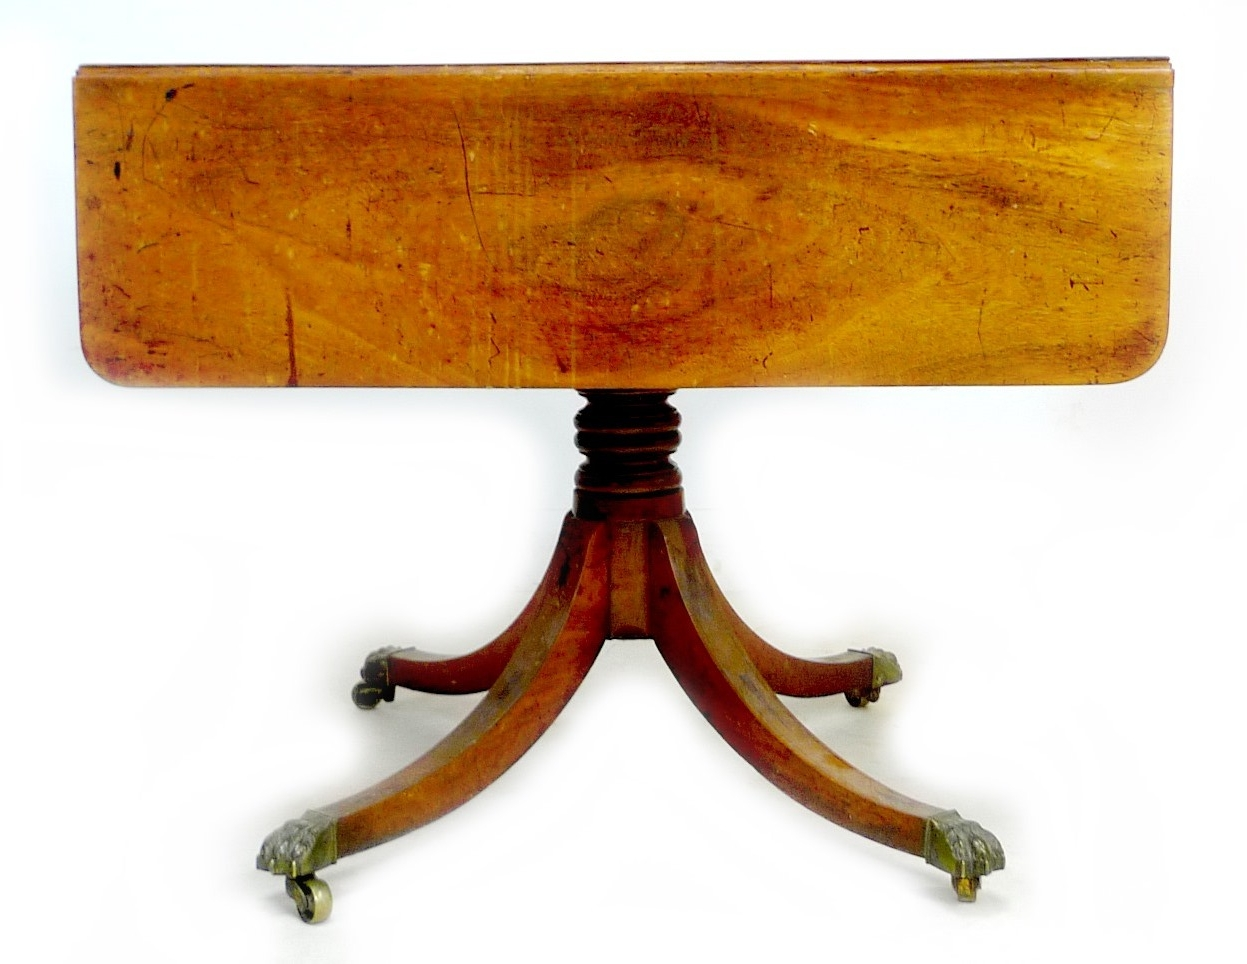 A Regency mahogany sofa table, with single frieze drawer, raised on four outswept legs with brass - Image 4 of 5